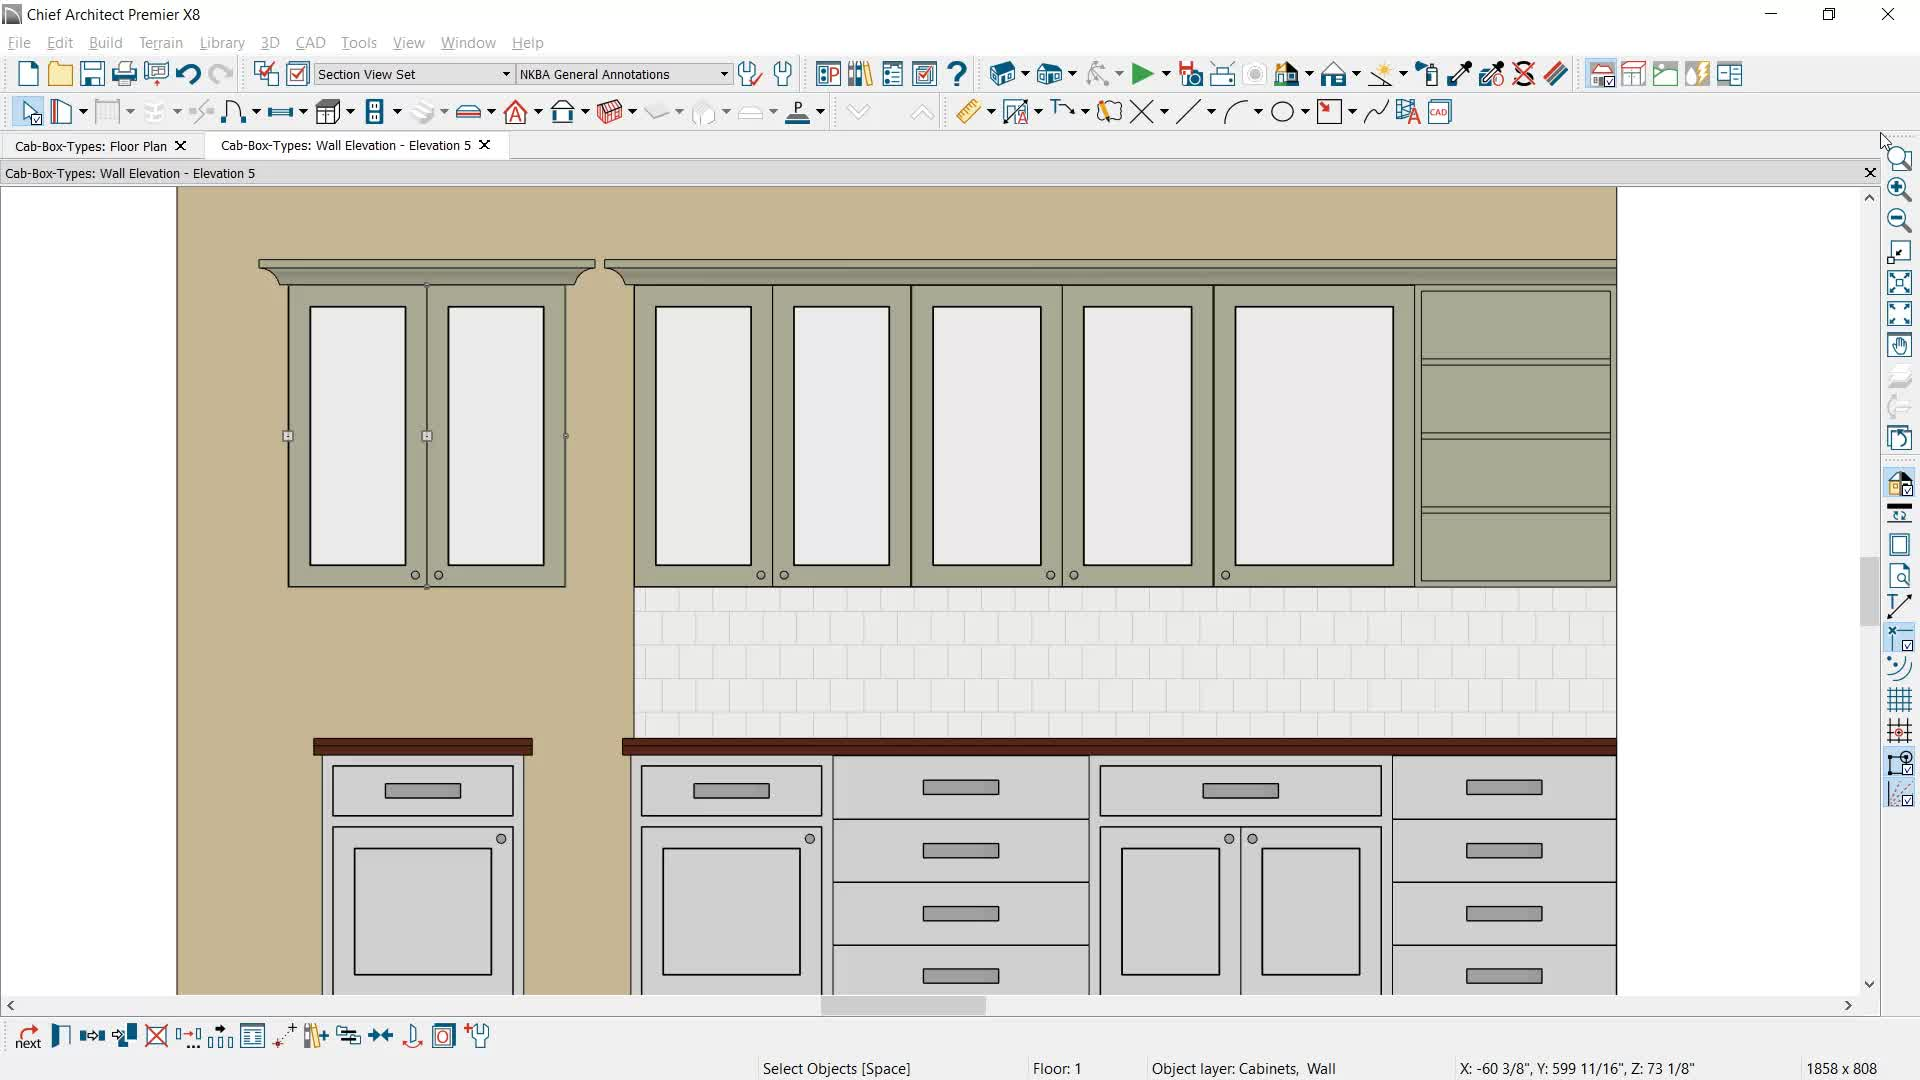 sc 1 st  Chief Architect & Cabinet Types - Framed and Frameless pezcame.com